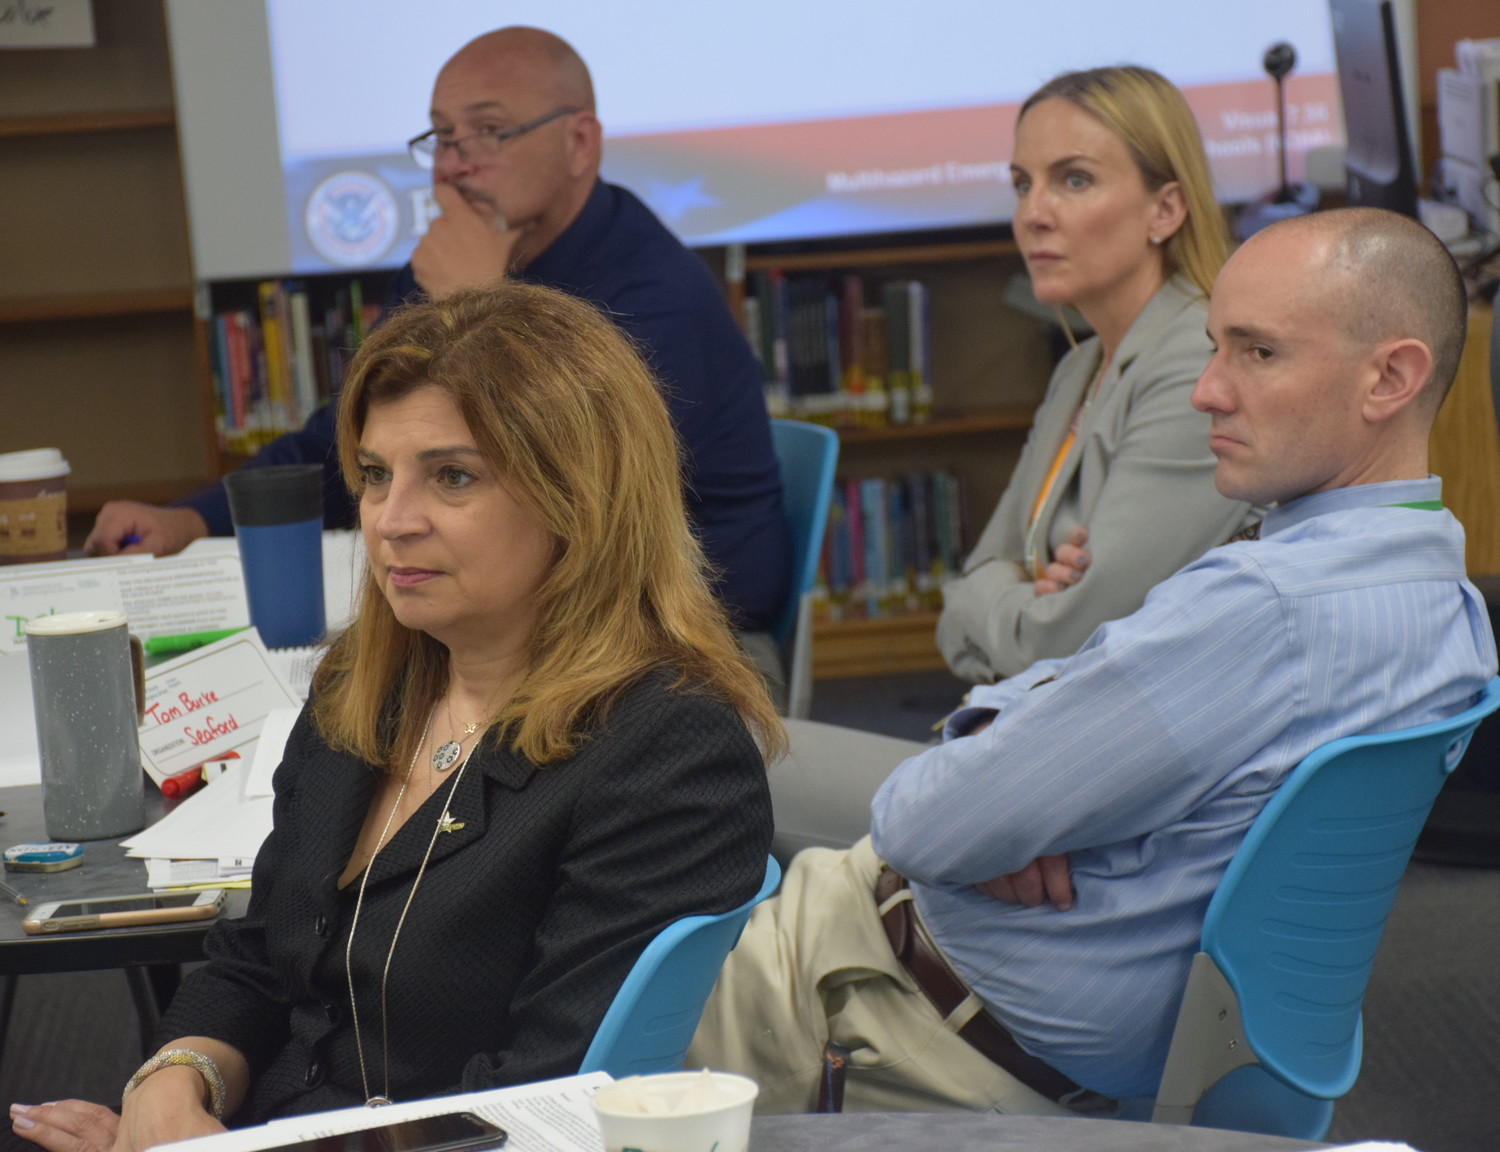 Seaford Superintendent Dr. Adele Pecora, incoming facilities director Russell Costa, middle school guidance counselor Stacey Ranzie and Harbor Elementary Principal Thomas Burke, right, learned about emergency management planning.